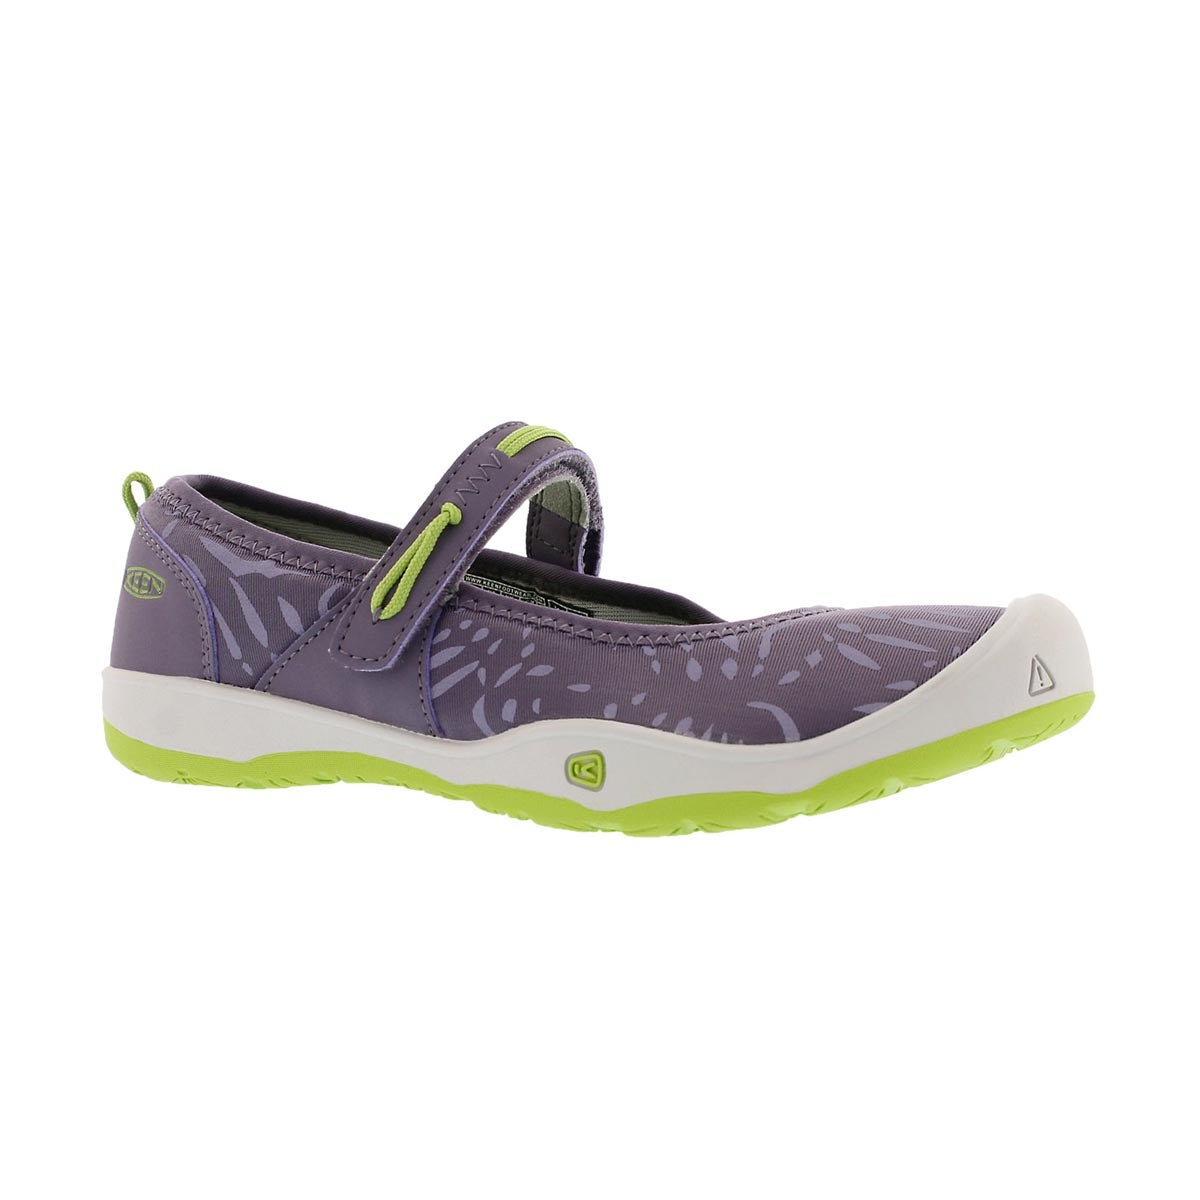 Girls' MOXIE purple/green casual Mary Janes